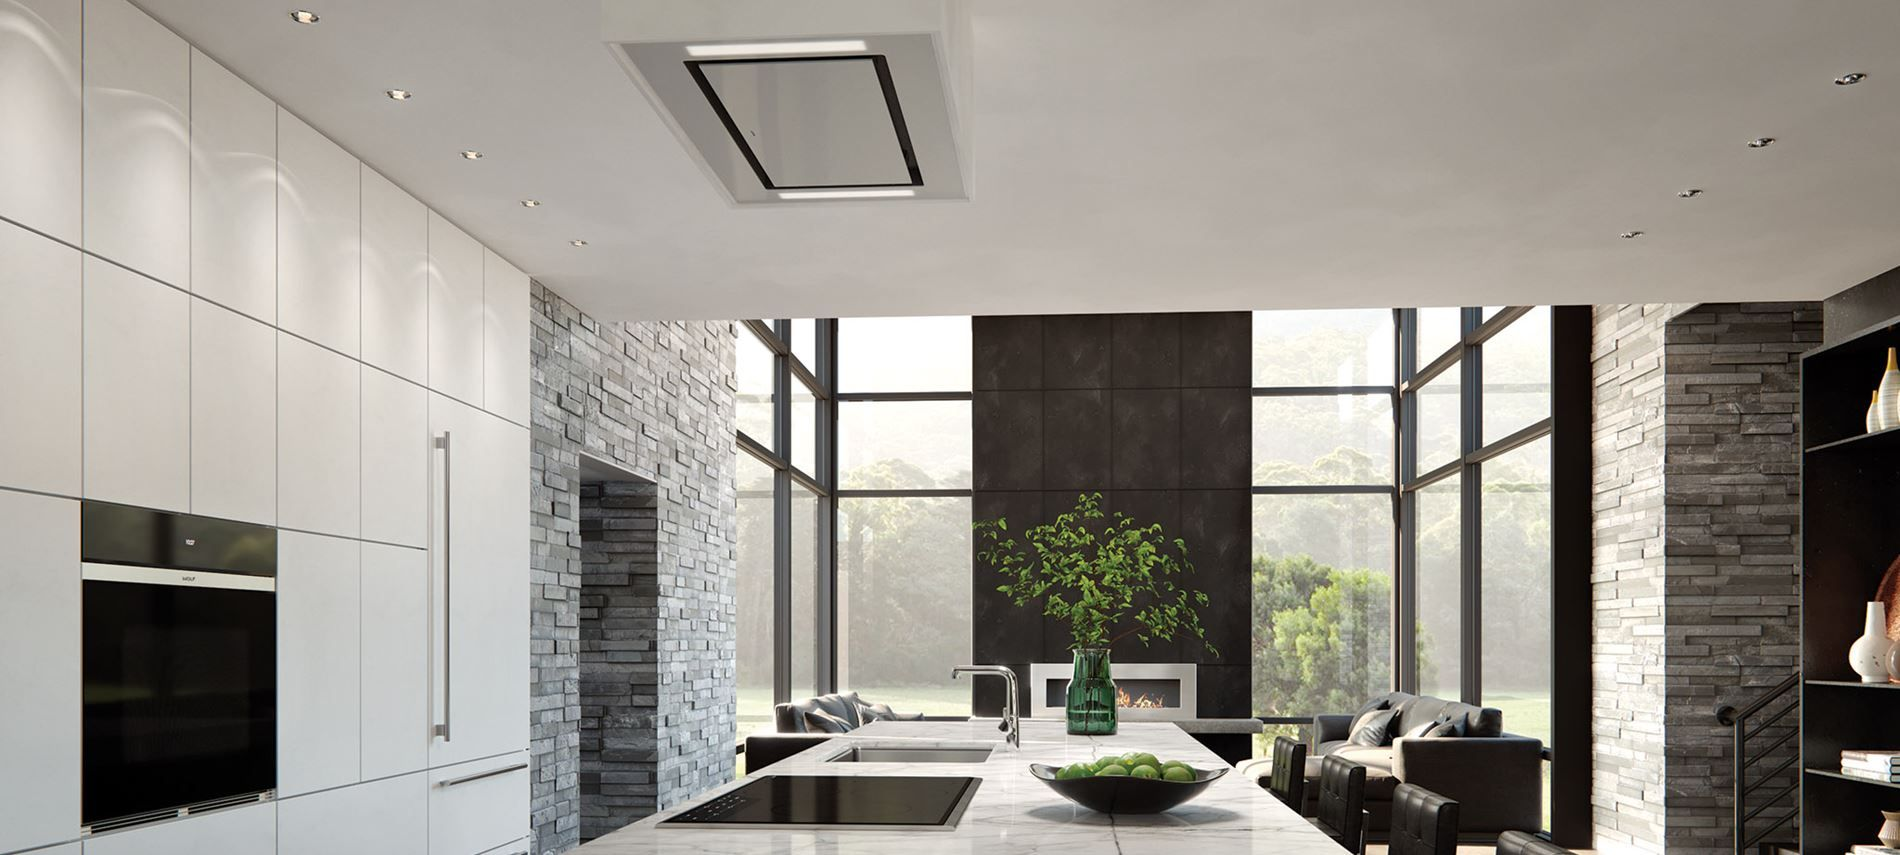 36 Ceiling Mounted Hood White Glass With Images Ceiling